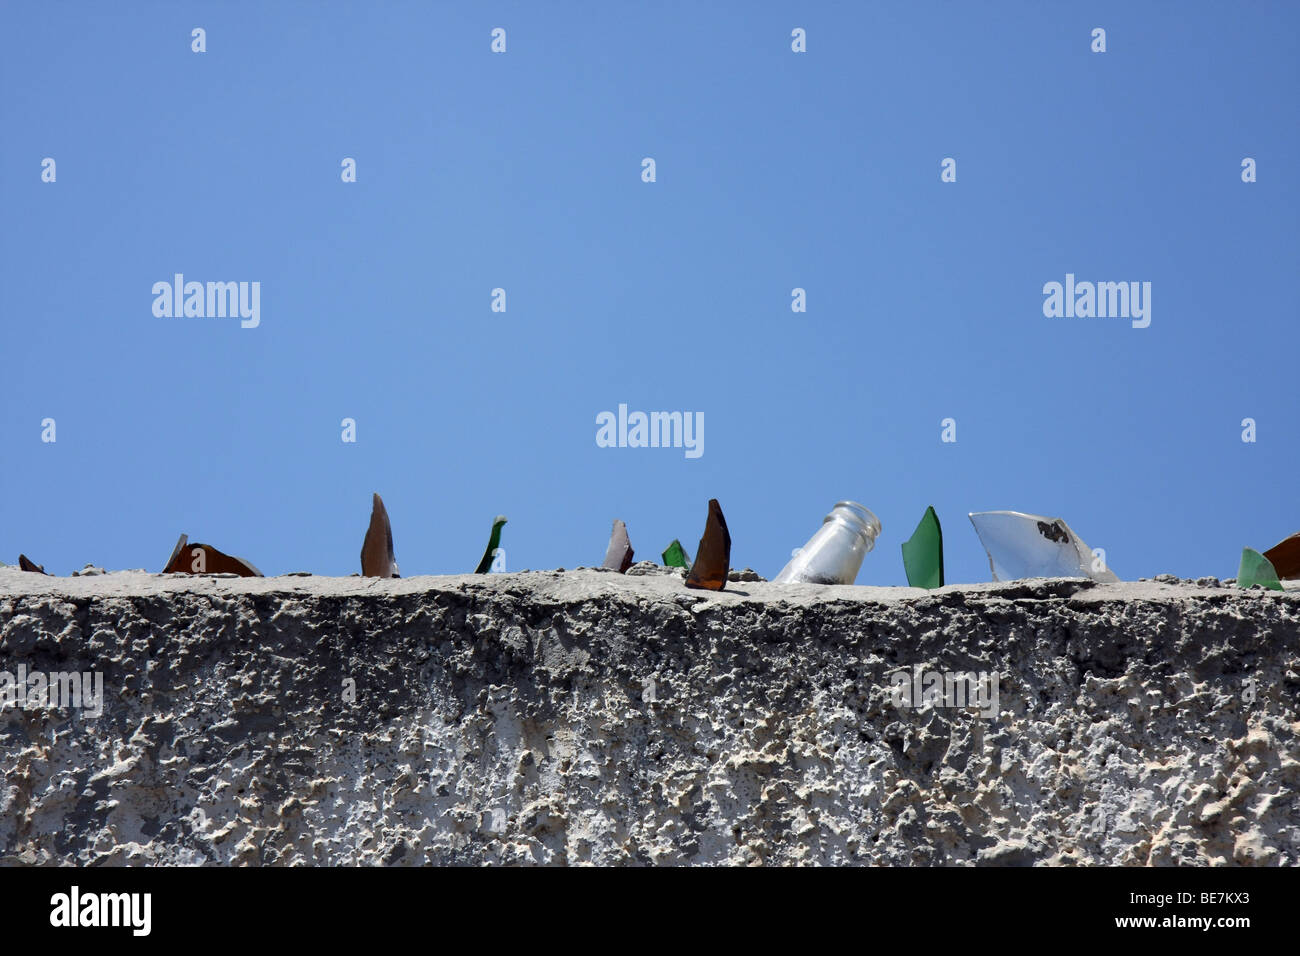 Top of a wall with sharp glass fragments from broken bottles as protection against people climbing over the wall, - Stock Image